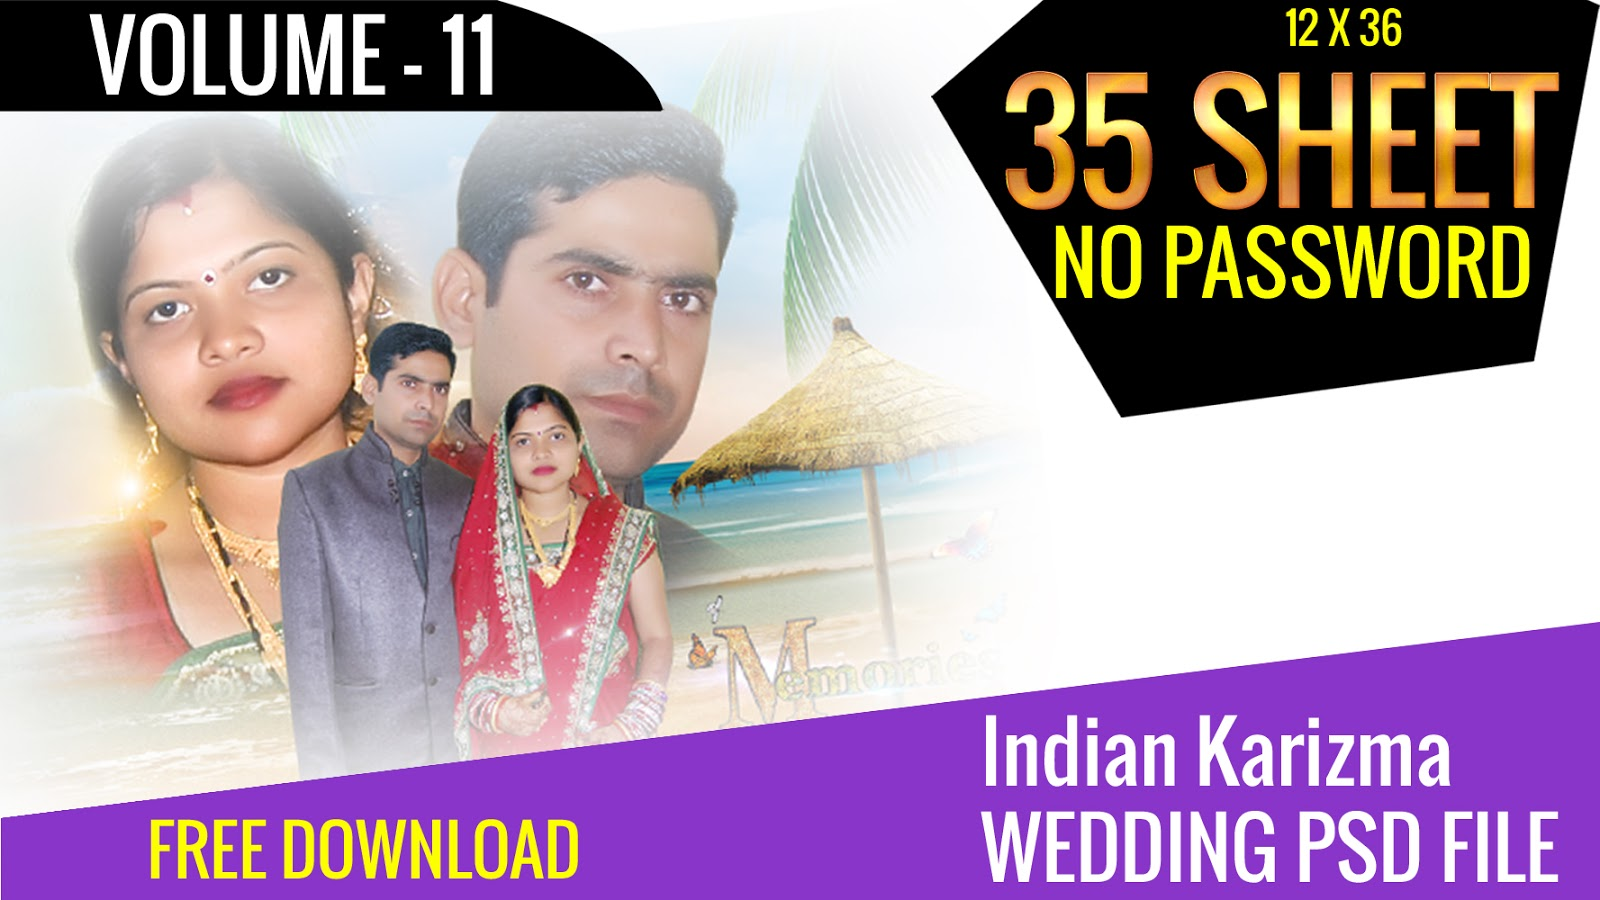 karizma Wedding Album vol - 11